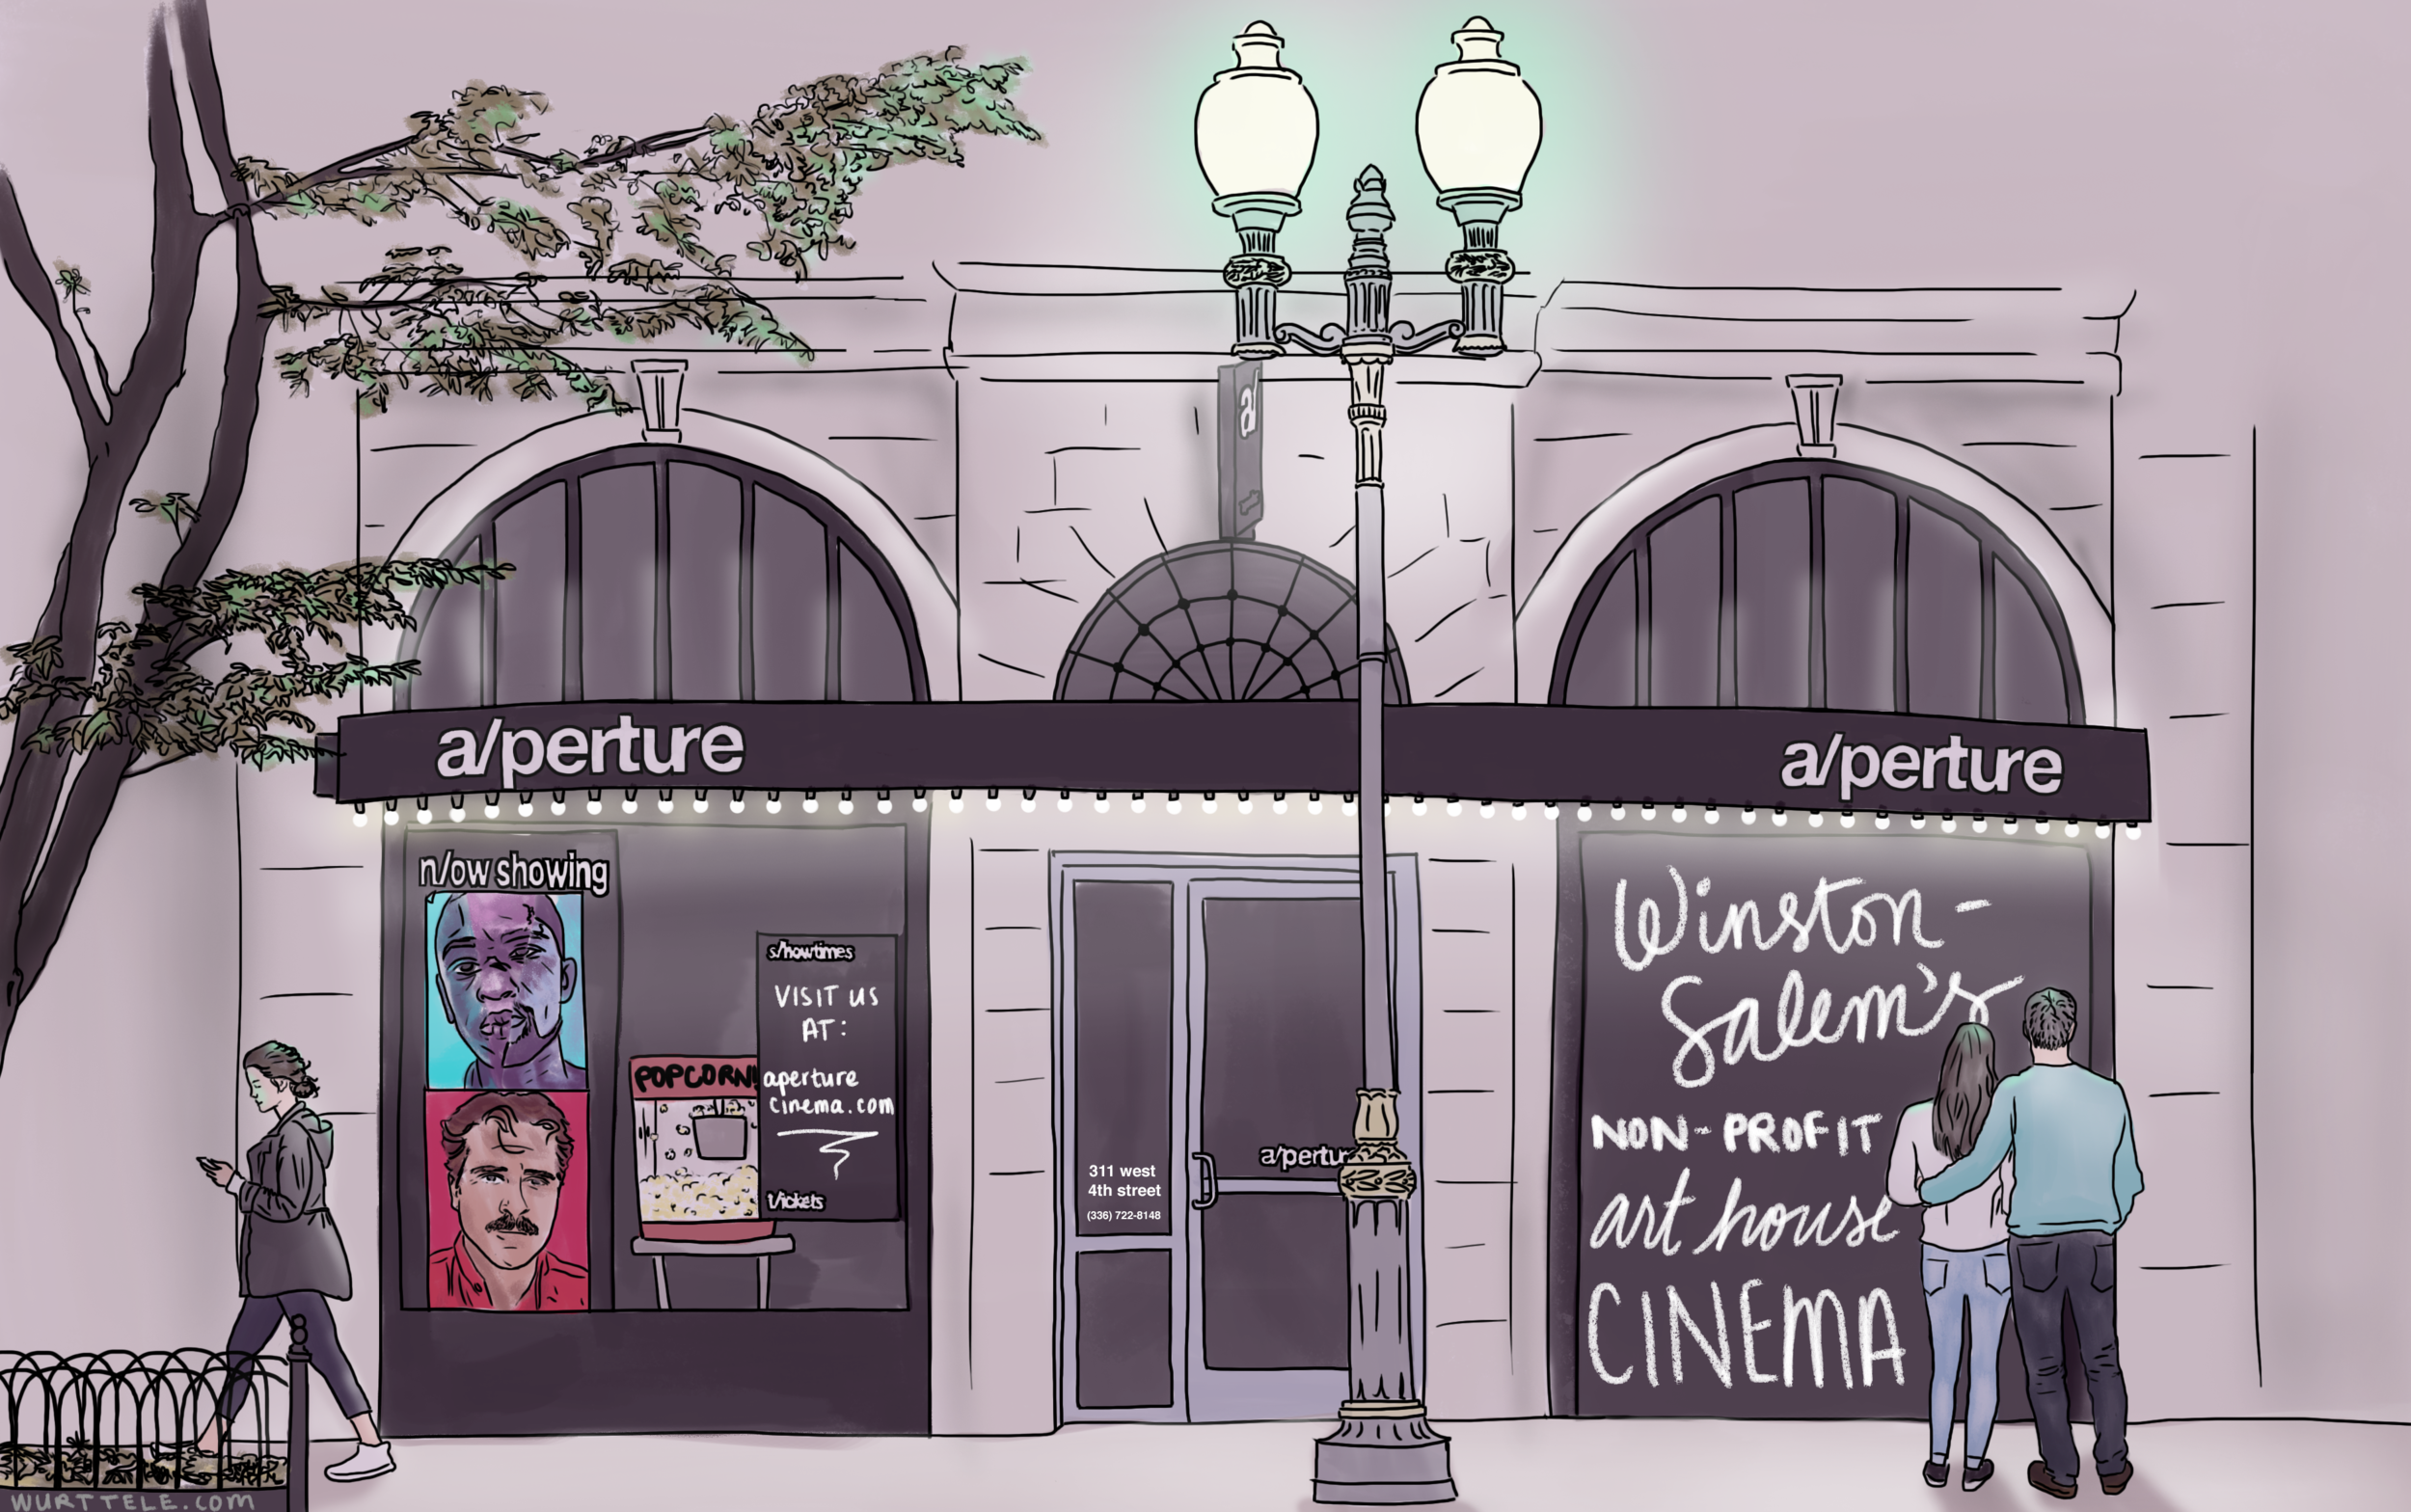 Storefront of a/perture cinema in the nighttime